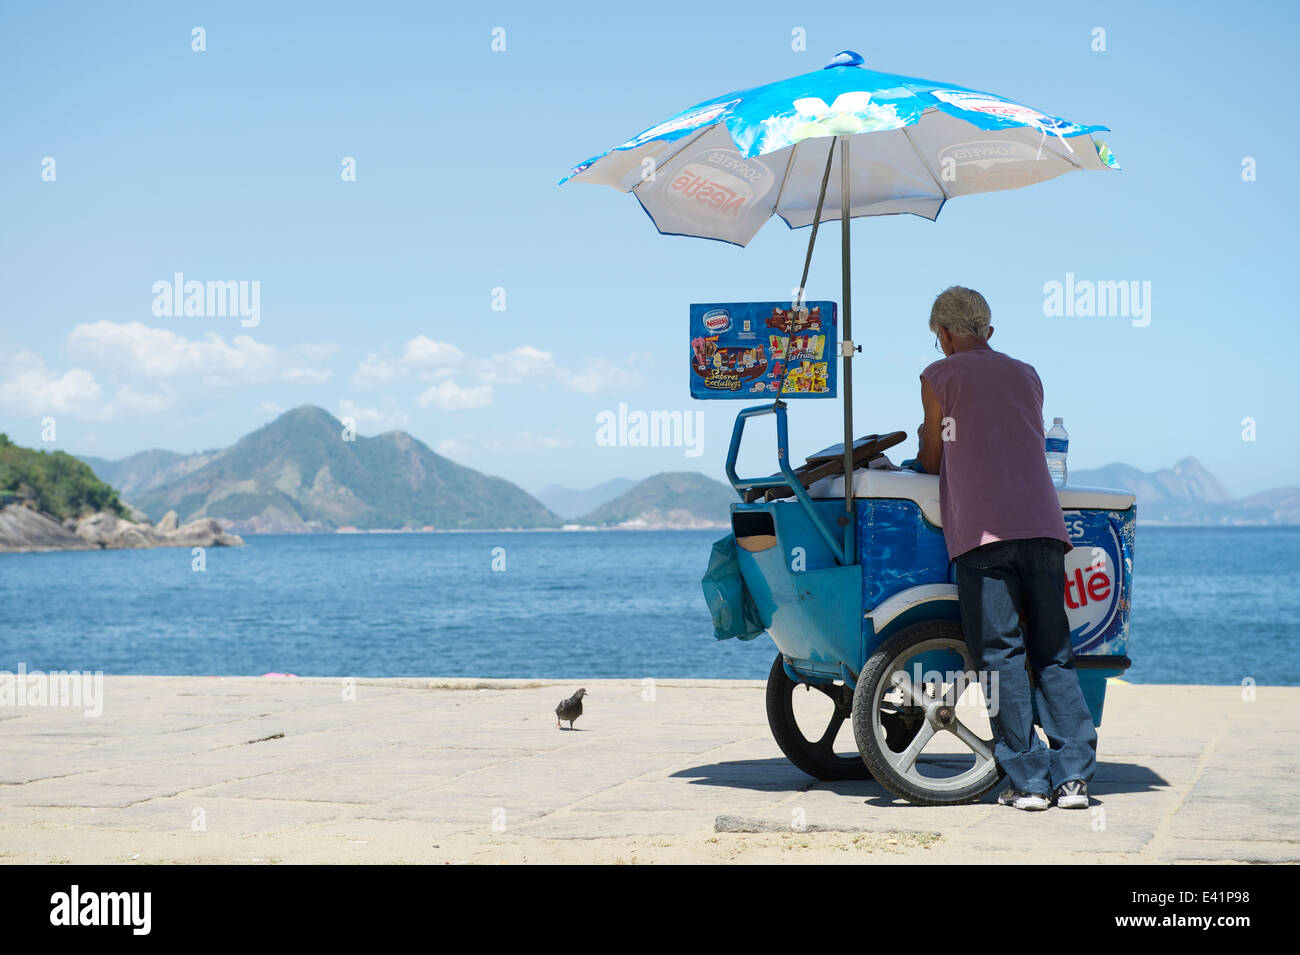 RIO DE JANEIRO, BRAZIL - FEBRUARY 11, 2014: Brazilian beach vendor selling ice cream stands at the entrance to Red - Stock Image